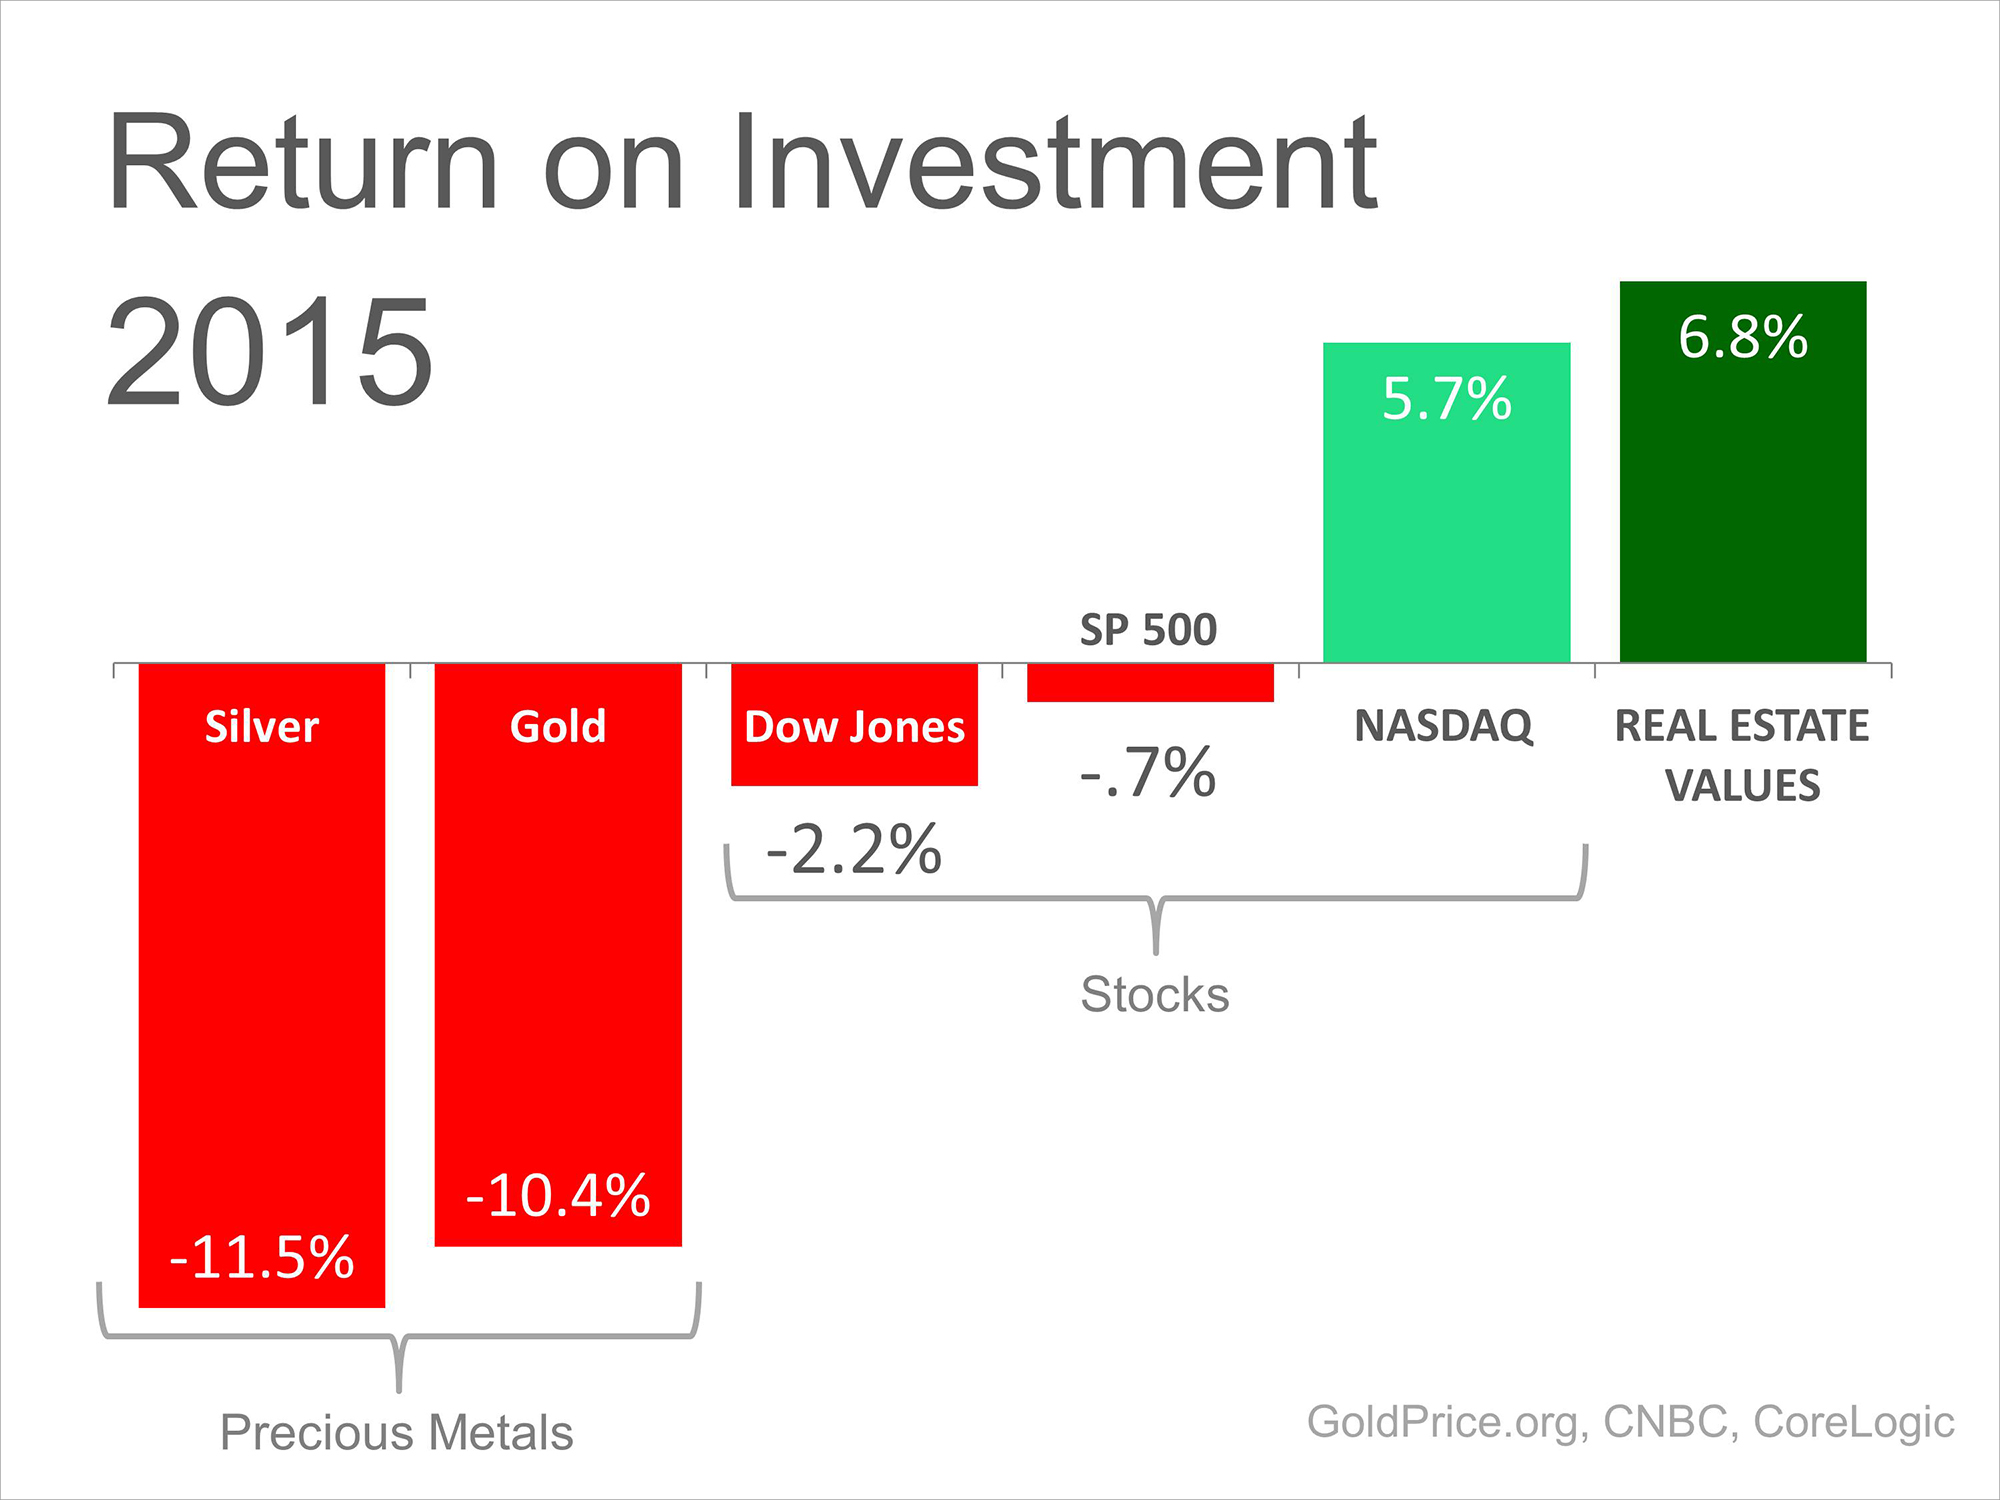 2015 Return on Investment | Simplifying The Market